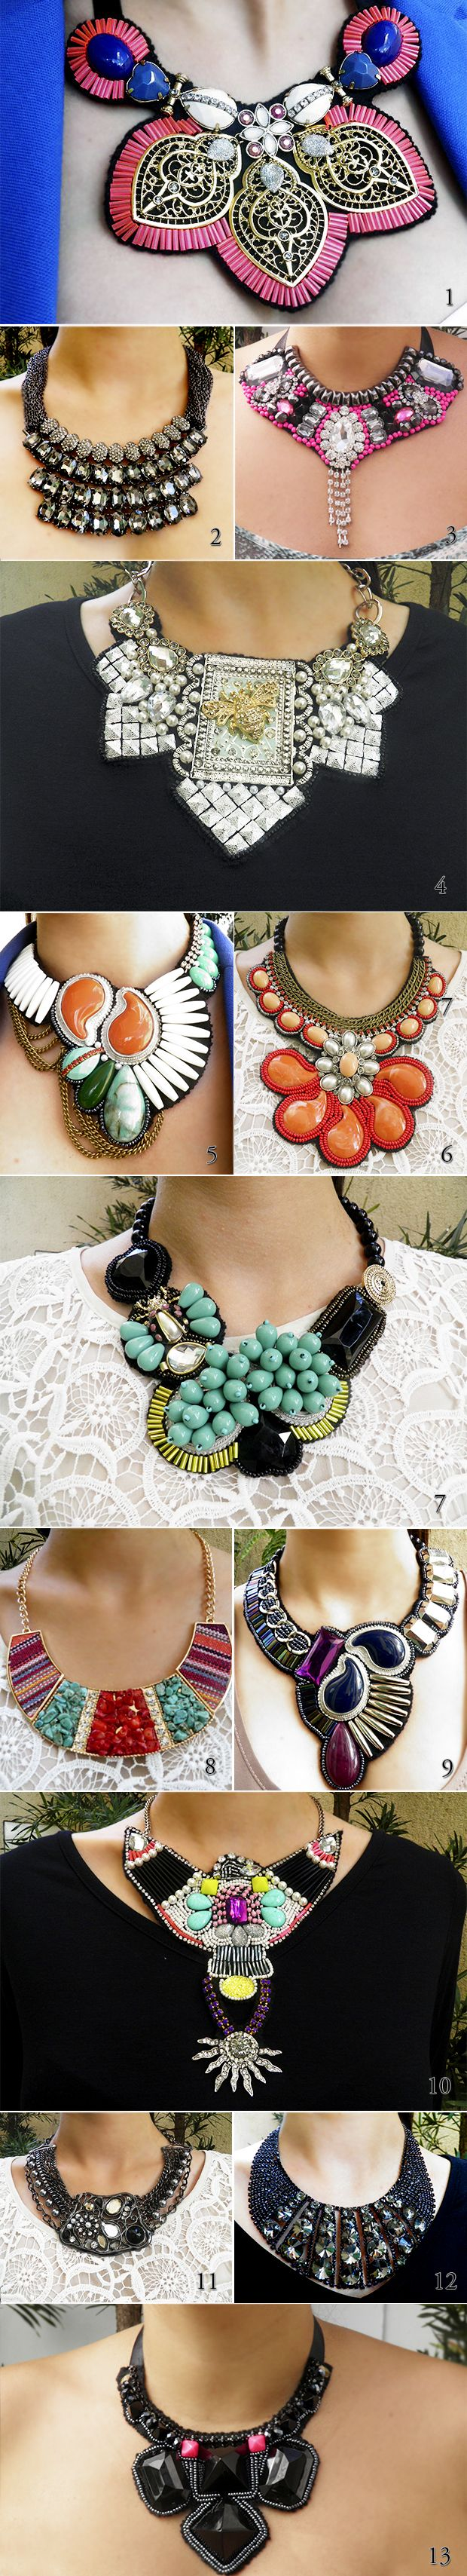 Great inspiration for bead embroidery! Nice mix of shapes and colors!!!